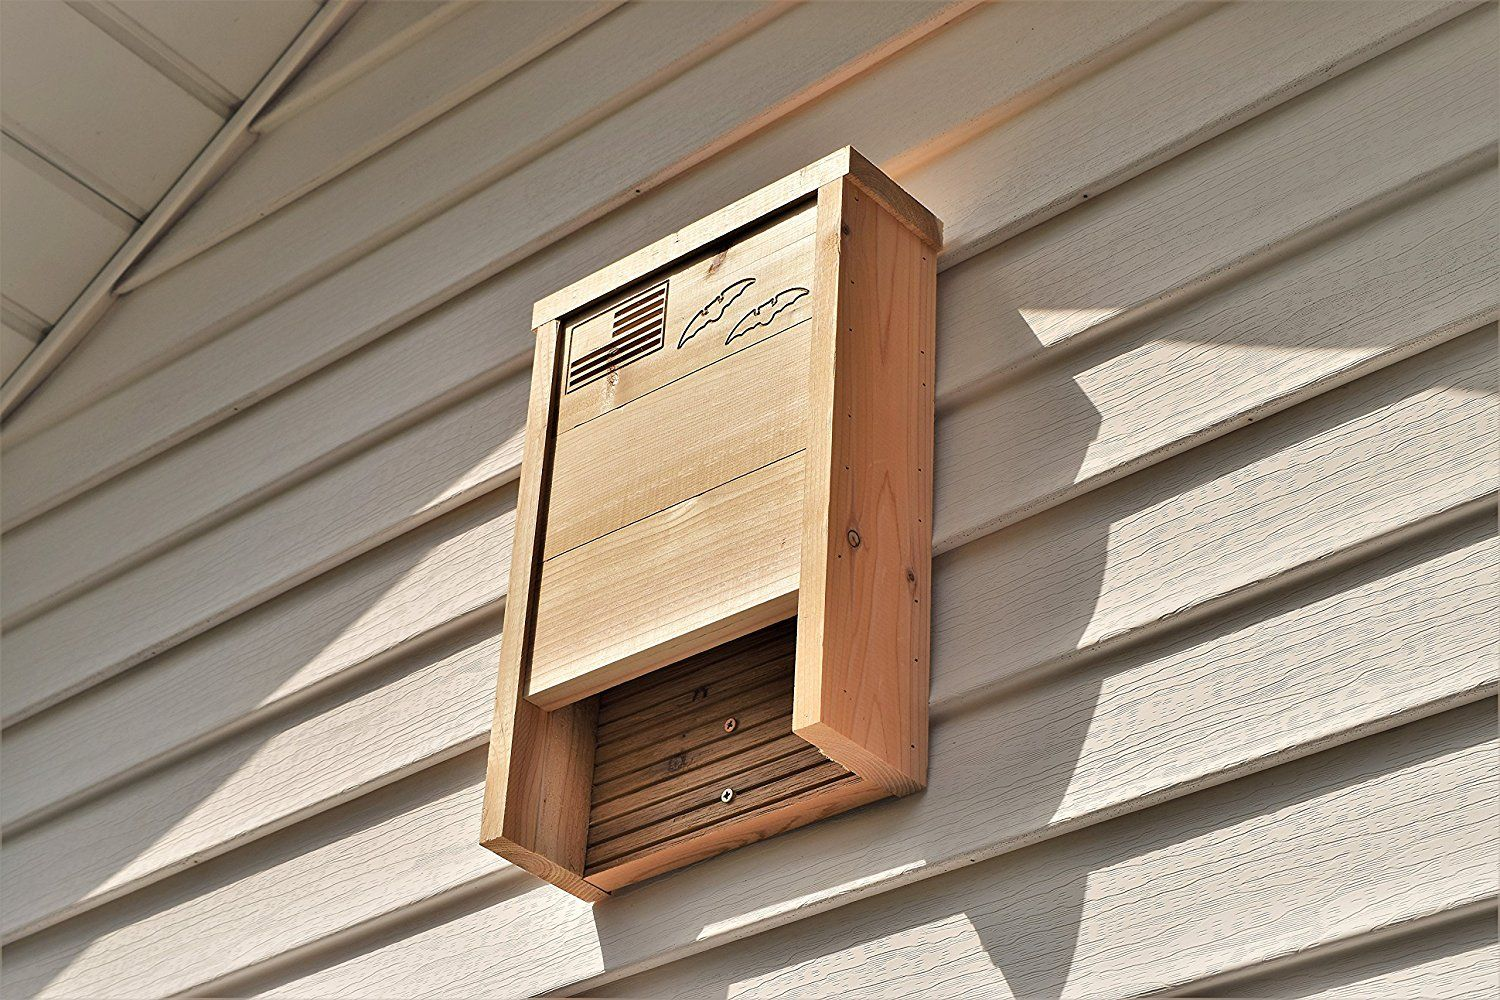 How To Attract Bats To Your Yard How To Make A Bat Box